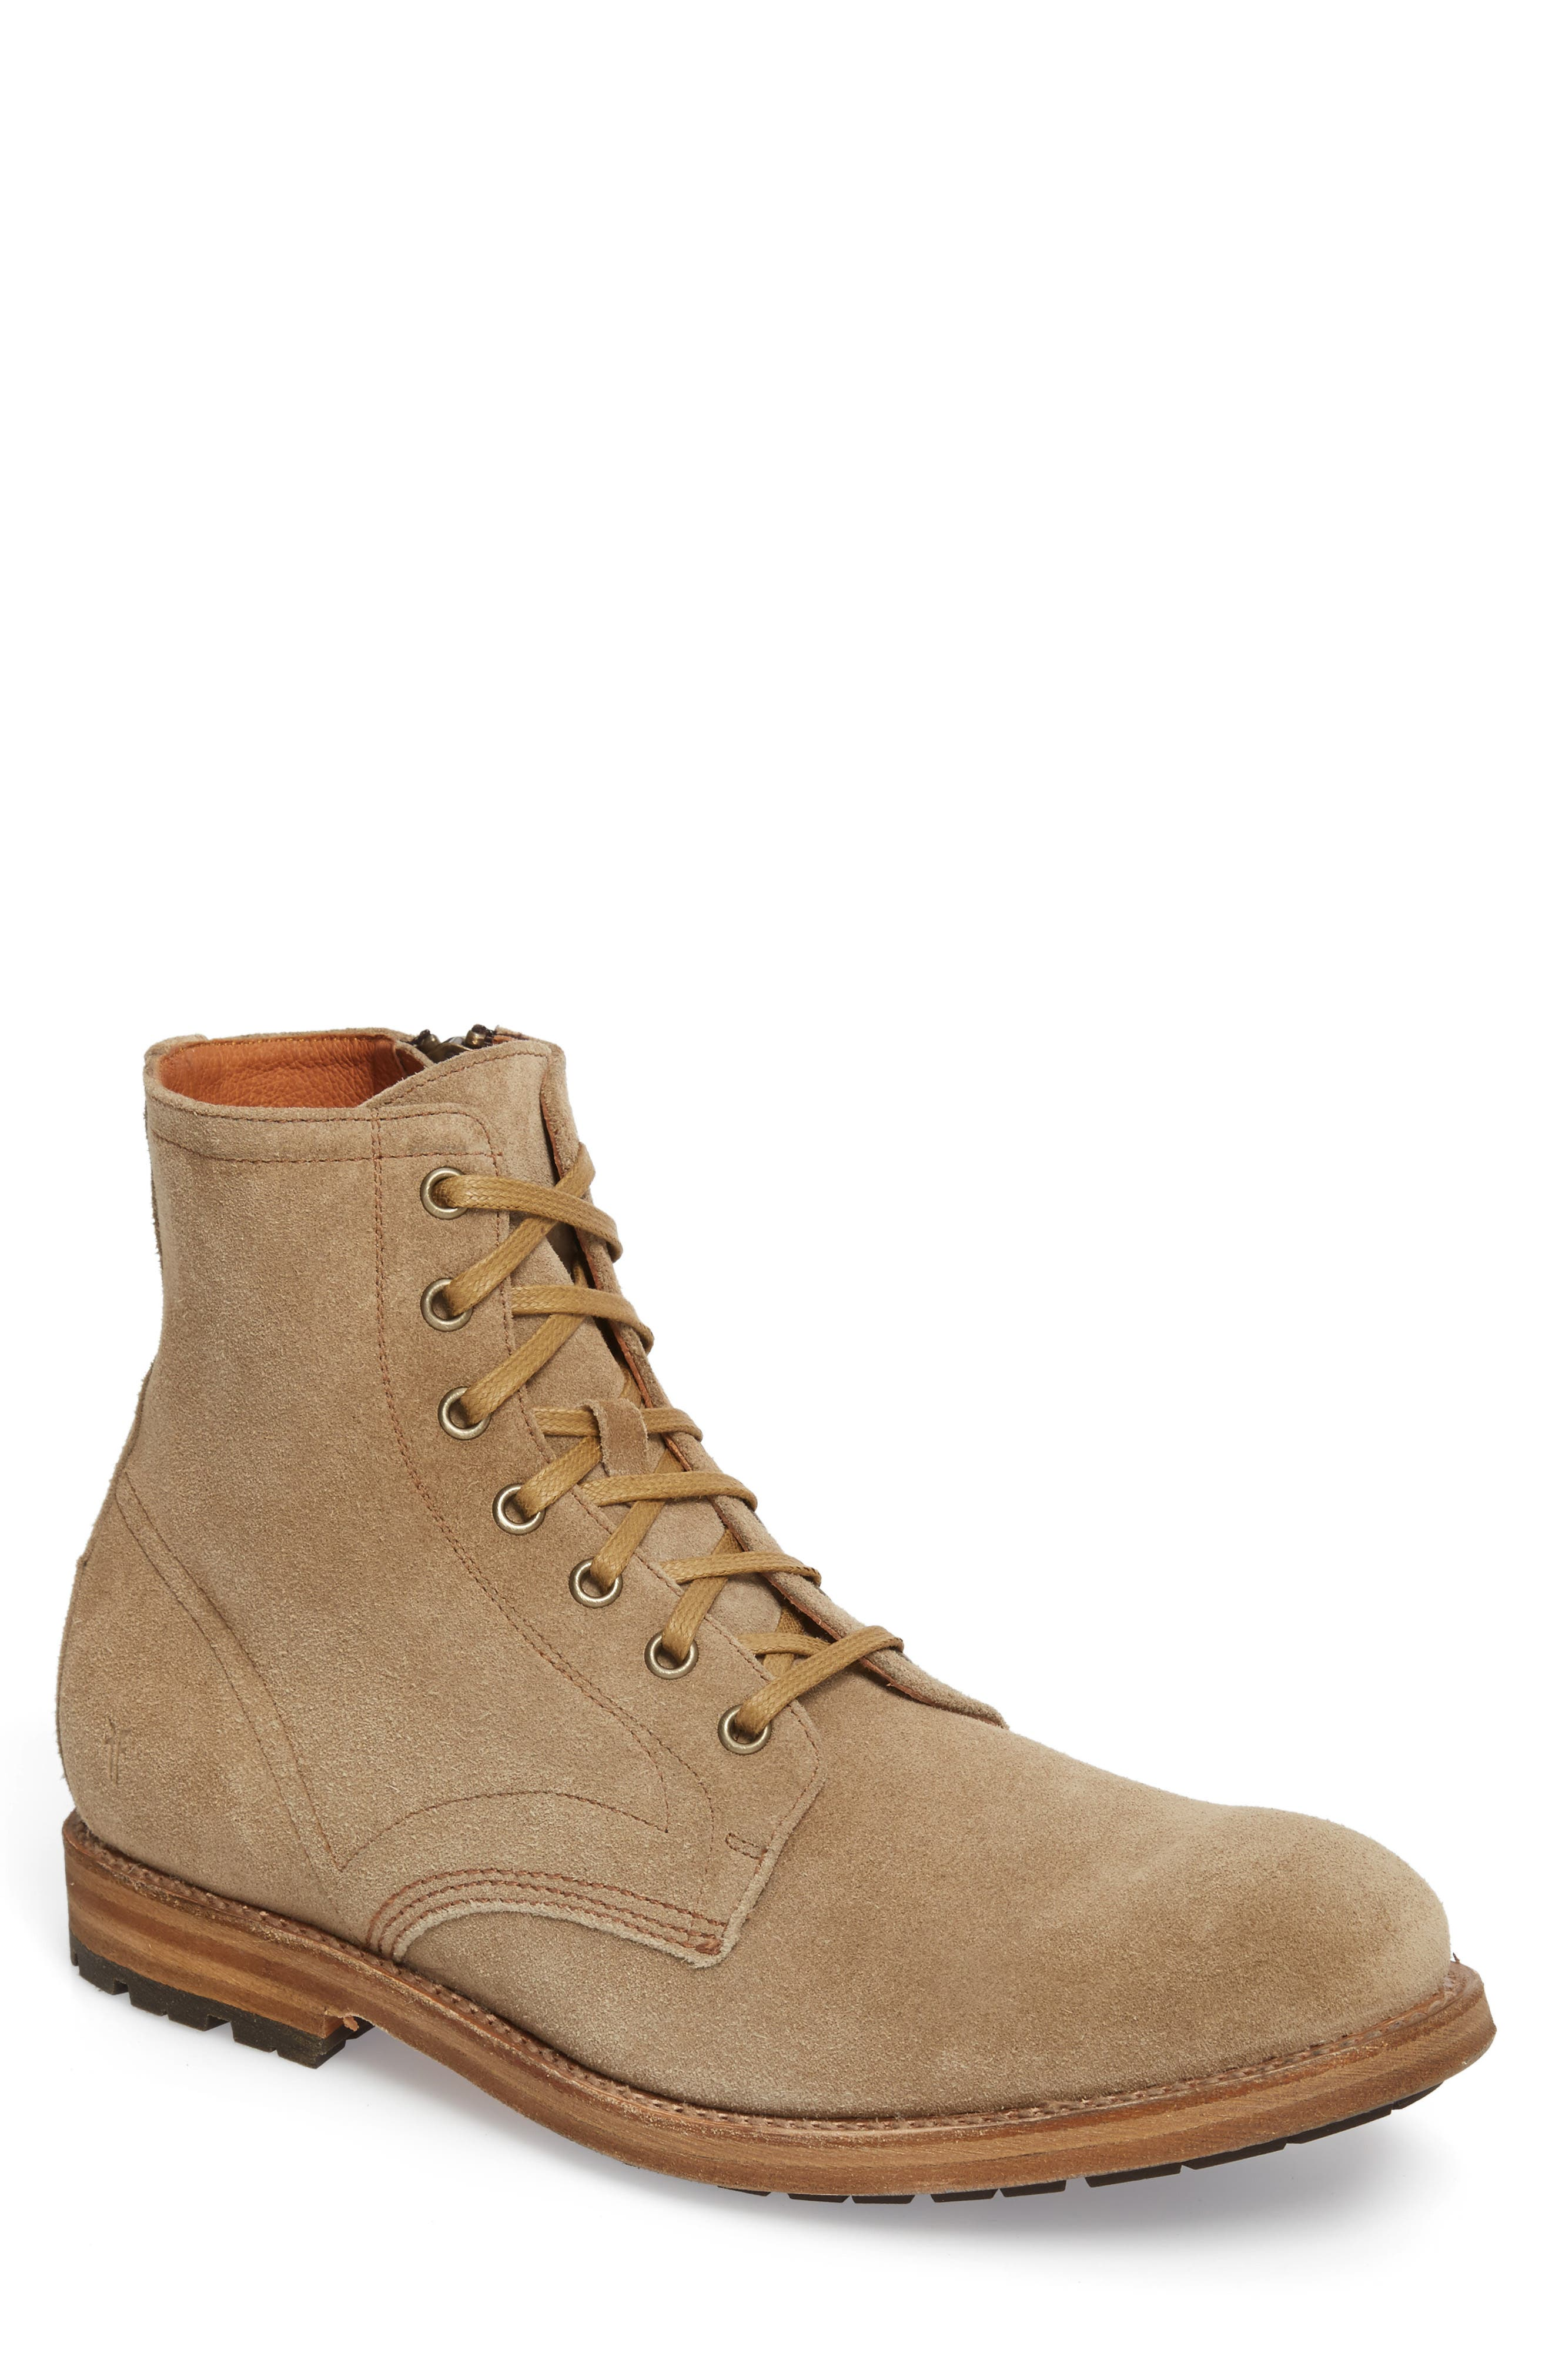 Fry Bowery Side Zip Combat Boot,                         Main,                         color, 250